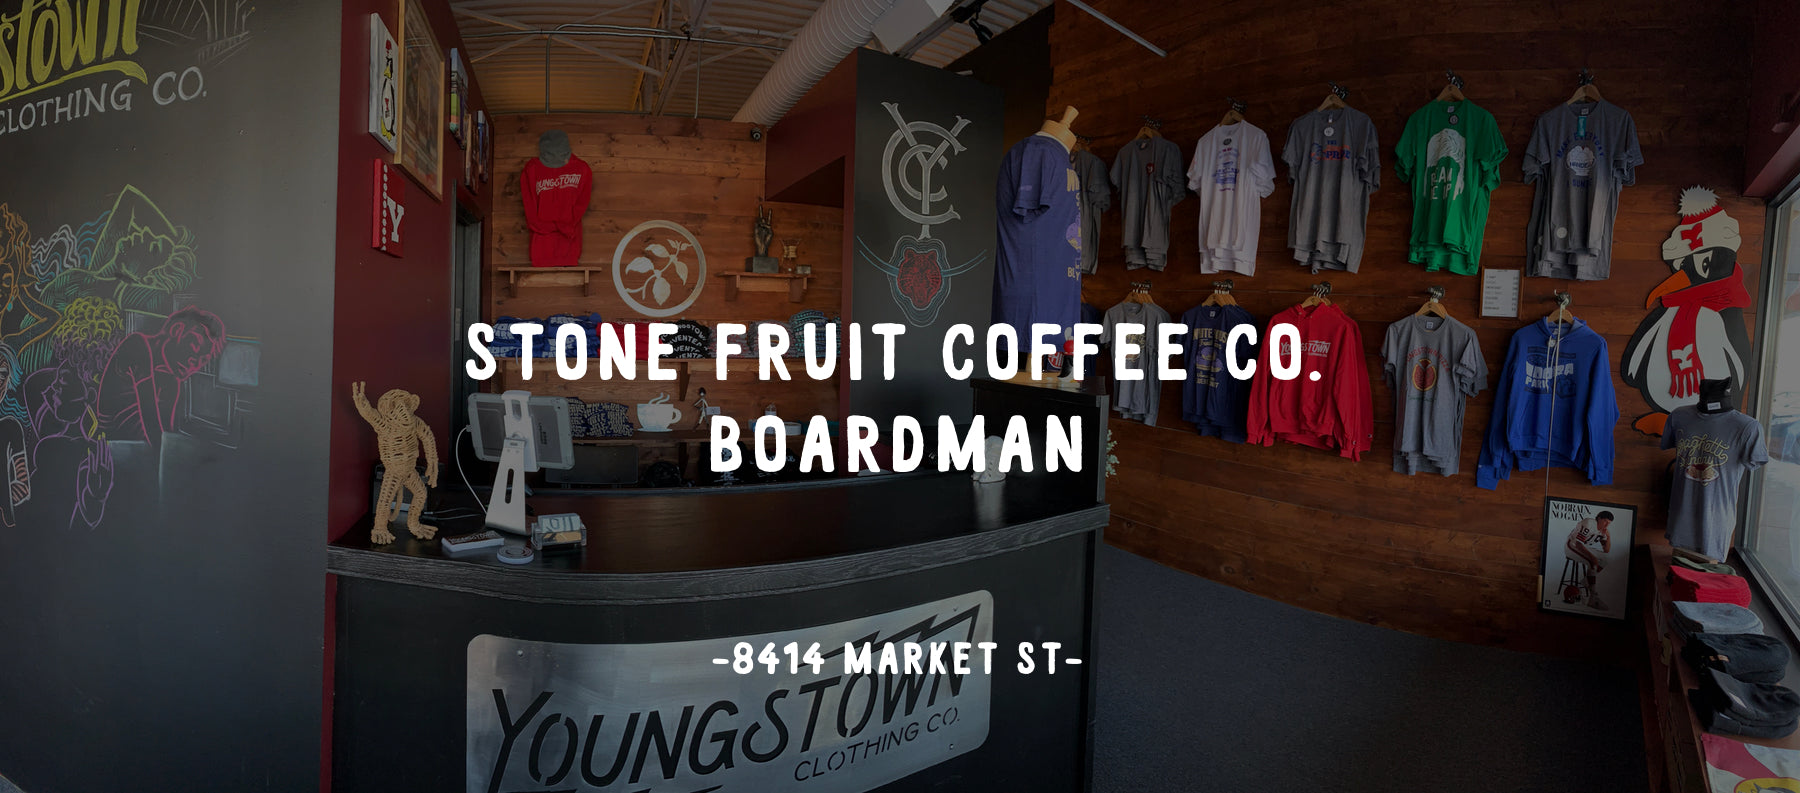 Stone Fruit Coffee Co. Location